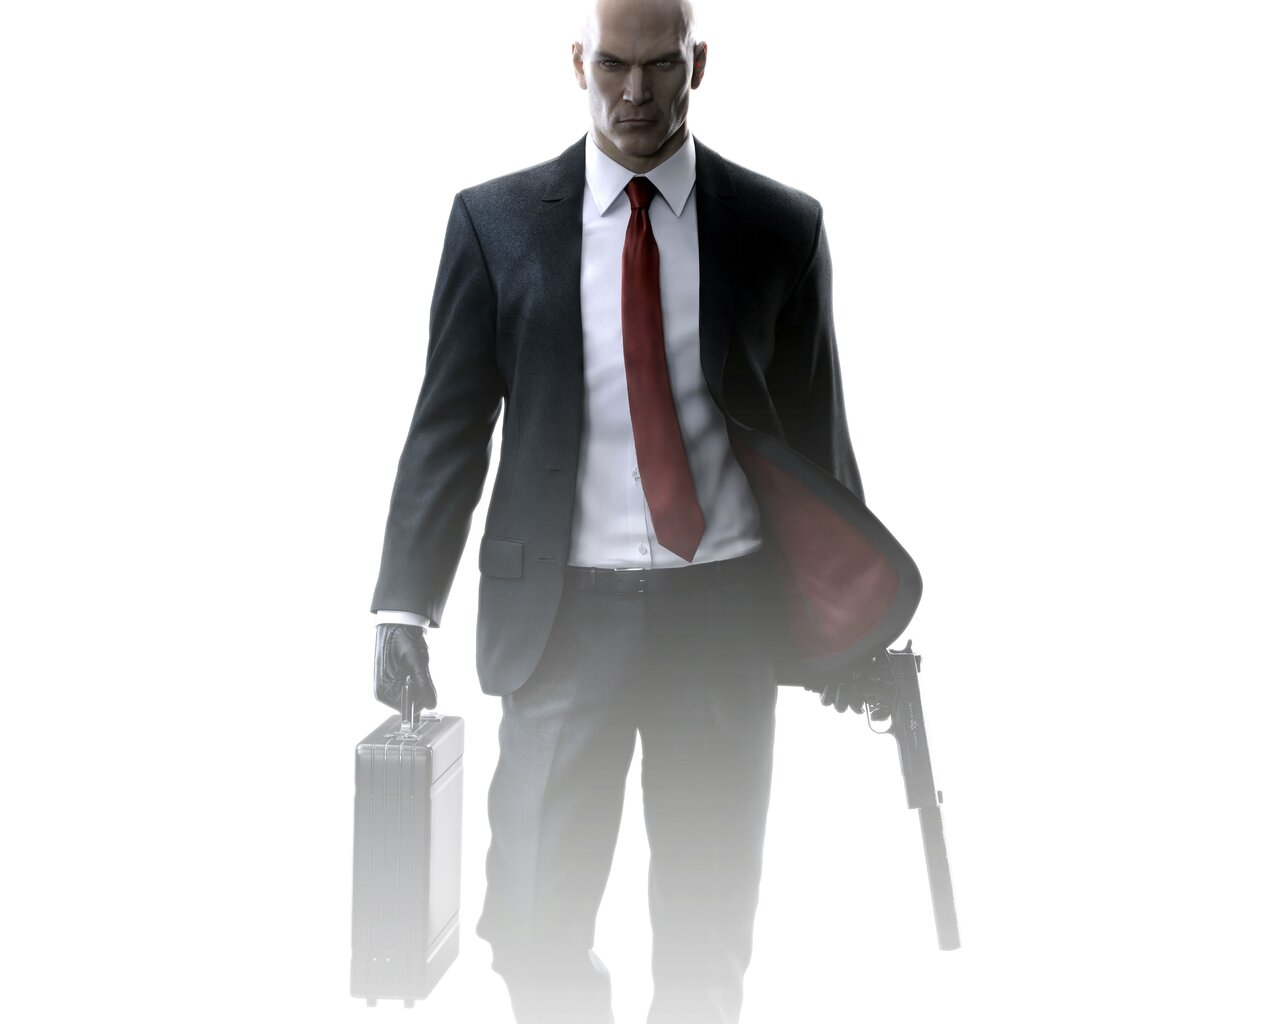 1280x1024 hitman agent 47 game 1280x1024 resolution hd 4k wallpapers images backgrounds - Hitman 47 wallpaper ...